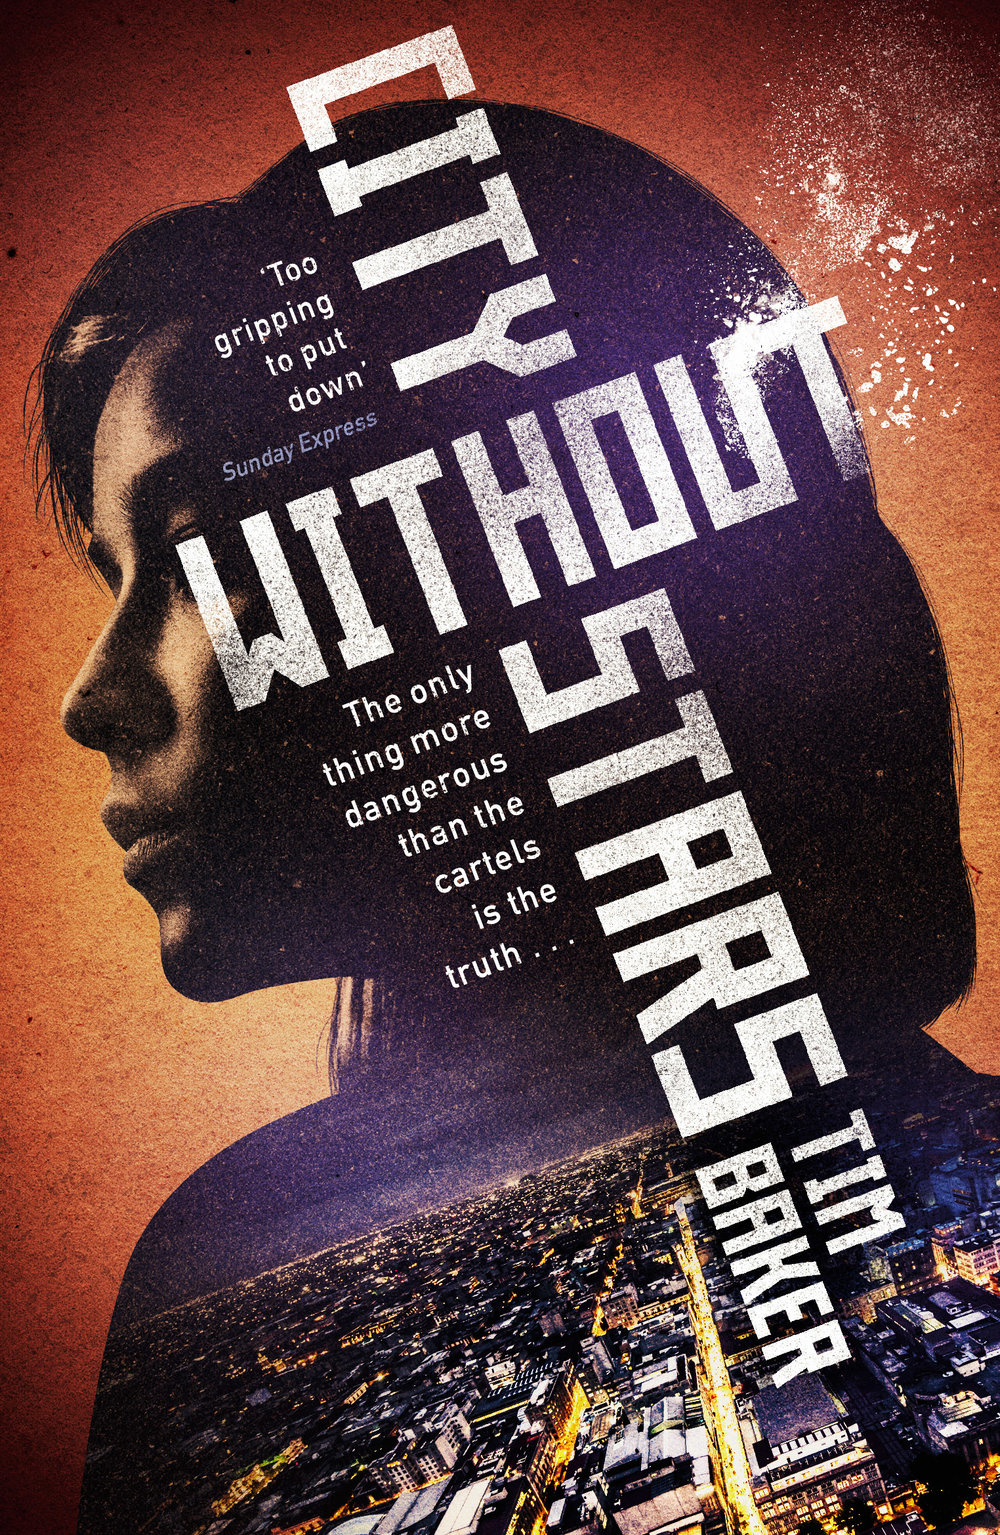 CITY WITHOUT STARS  Thriller, Faber 2019  In Cuidad Real, Mexico, a deadly war between rival cartels is erupting, and hundreds of sweatshop workers are being murdered. As his police superiors start shutting down his investigation, Fuentes suspects most of his colleagues are on the payroll of Narco kingpin, El Santo.  Meanwhile, despairing union activist Pilar decides to take social justice into her own hands. But if she wants to stop the killings, she's going to have to ignore all her instincts and accept the help of Fuentes. When the name of Mexico's saintly orphan-rescuer, Padre Marcio, keeps resurfacing, Pilar and Fuentes begin to realise how deep the cover-up goes.